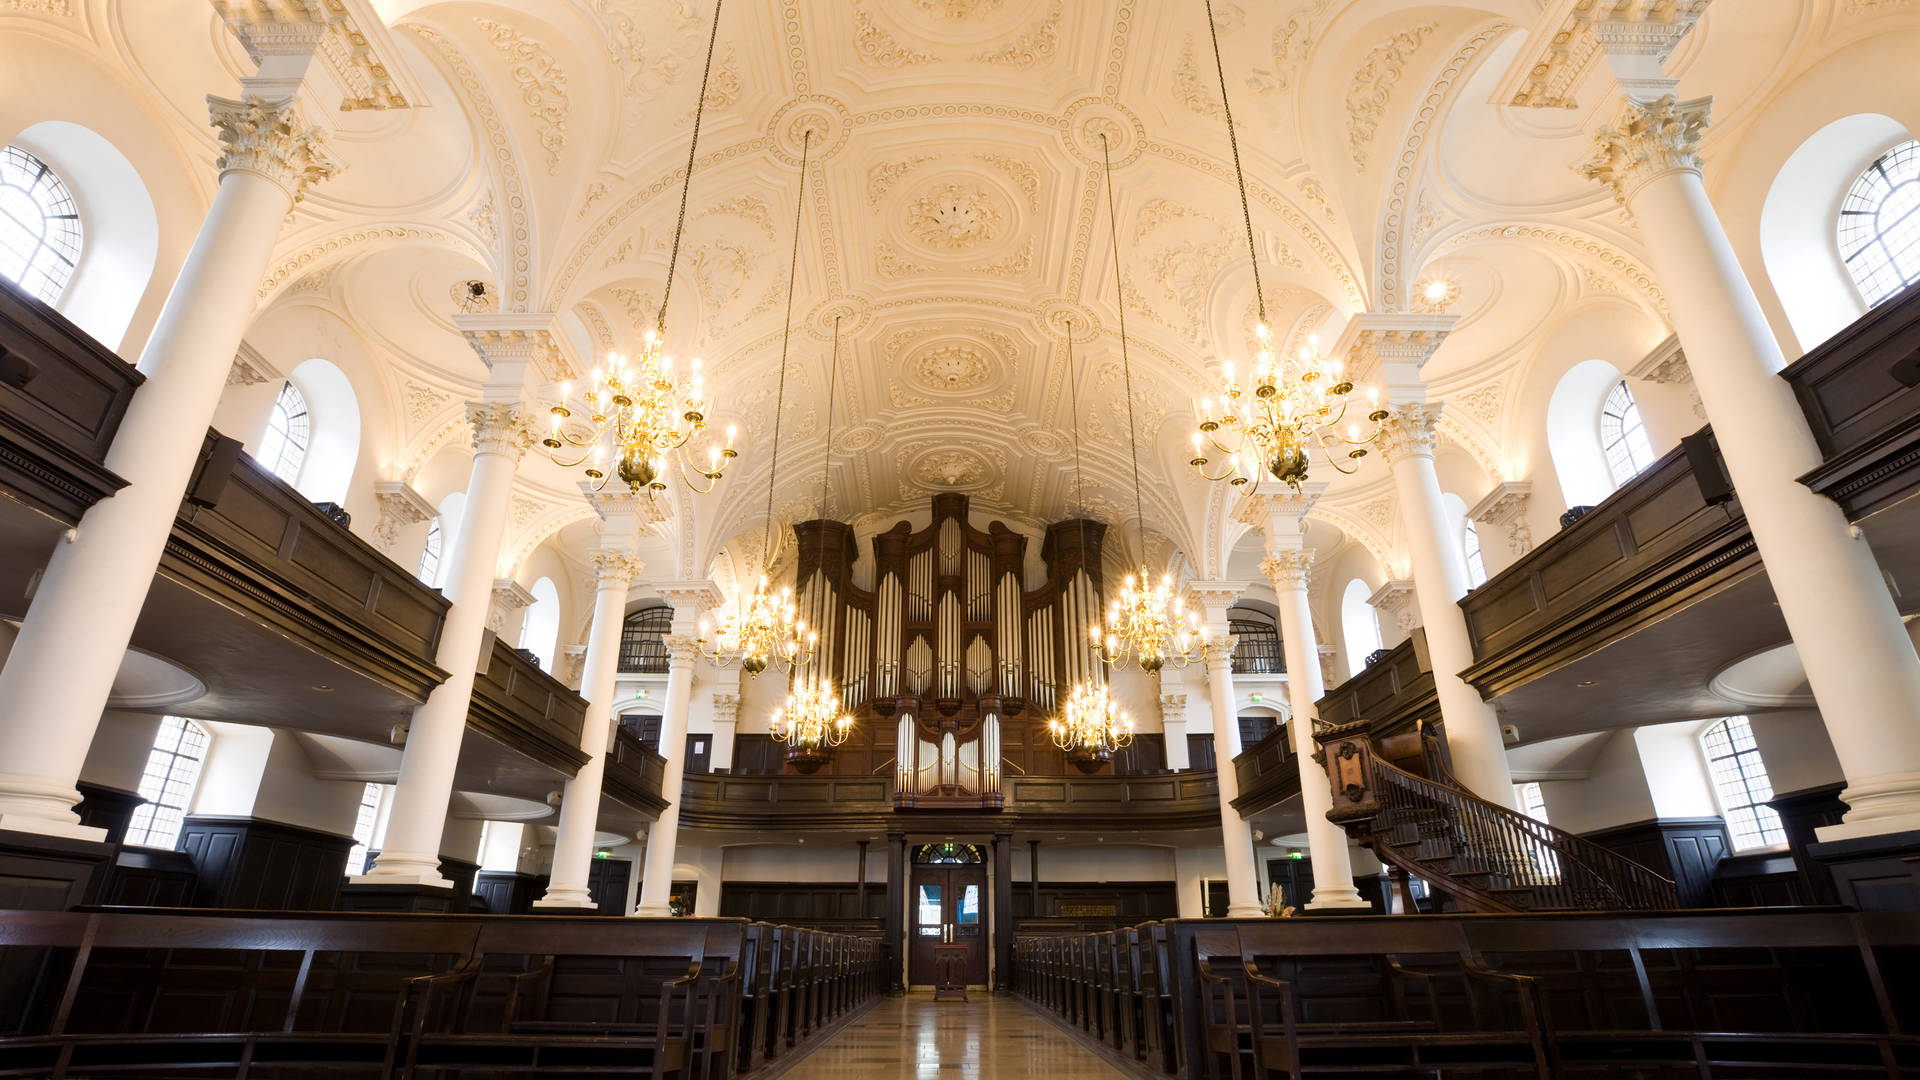 St Martin in the fields atmospheric historic church